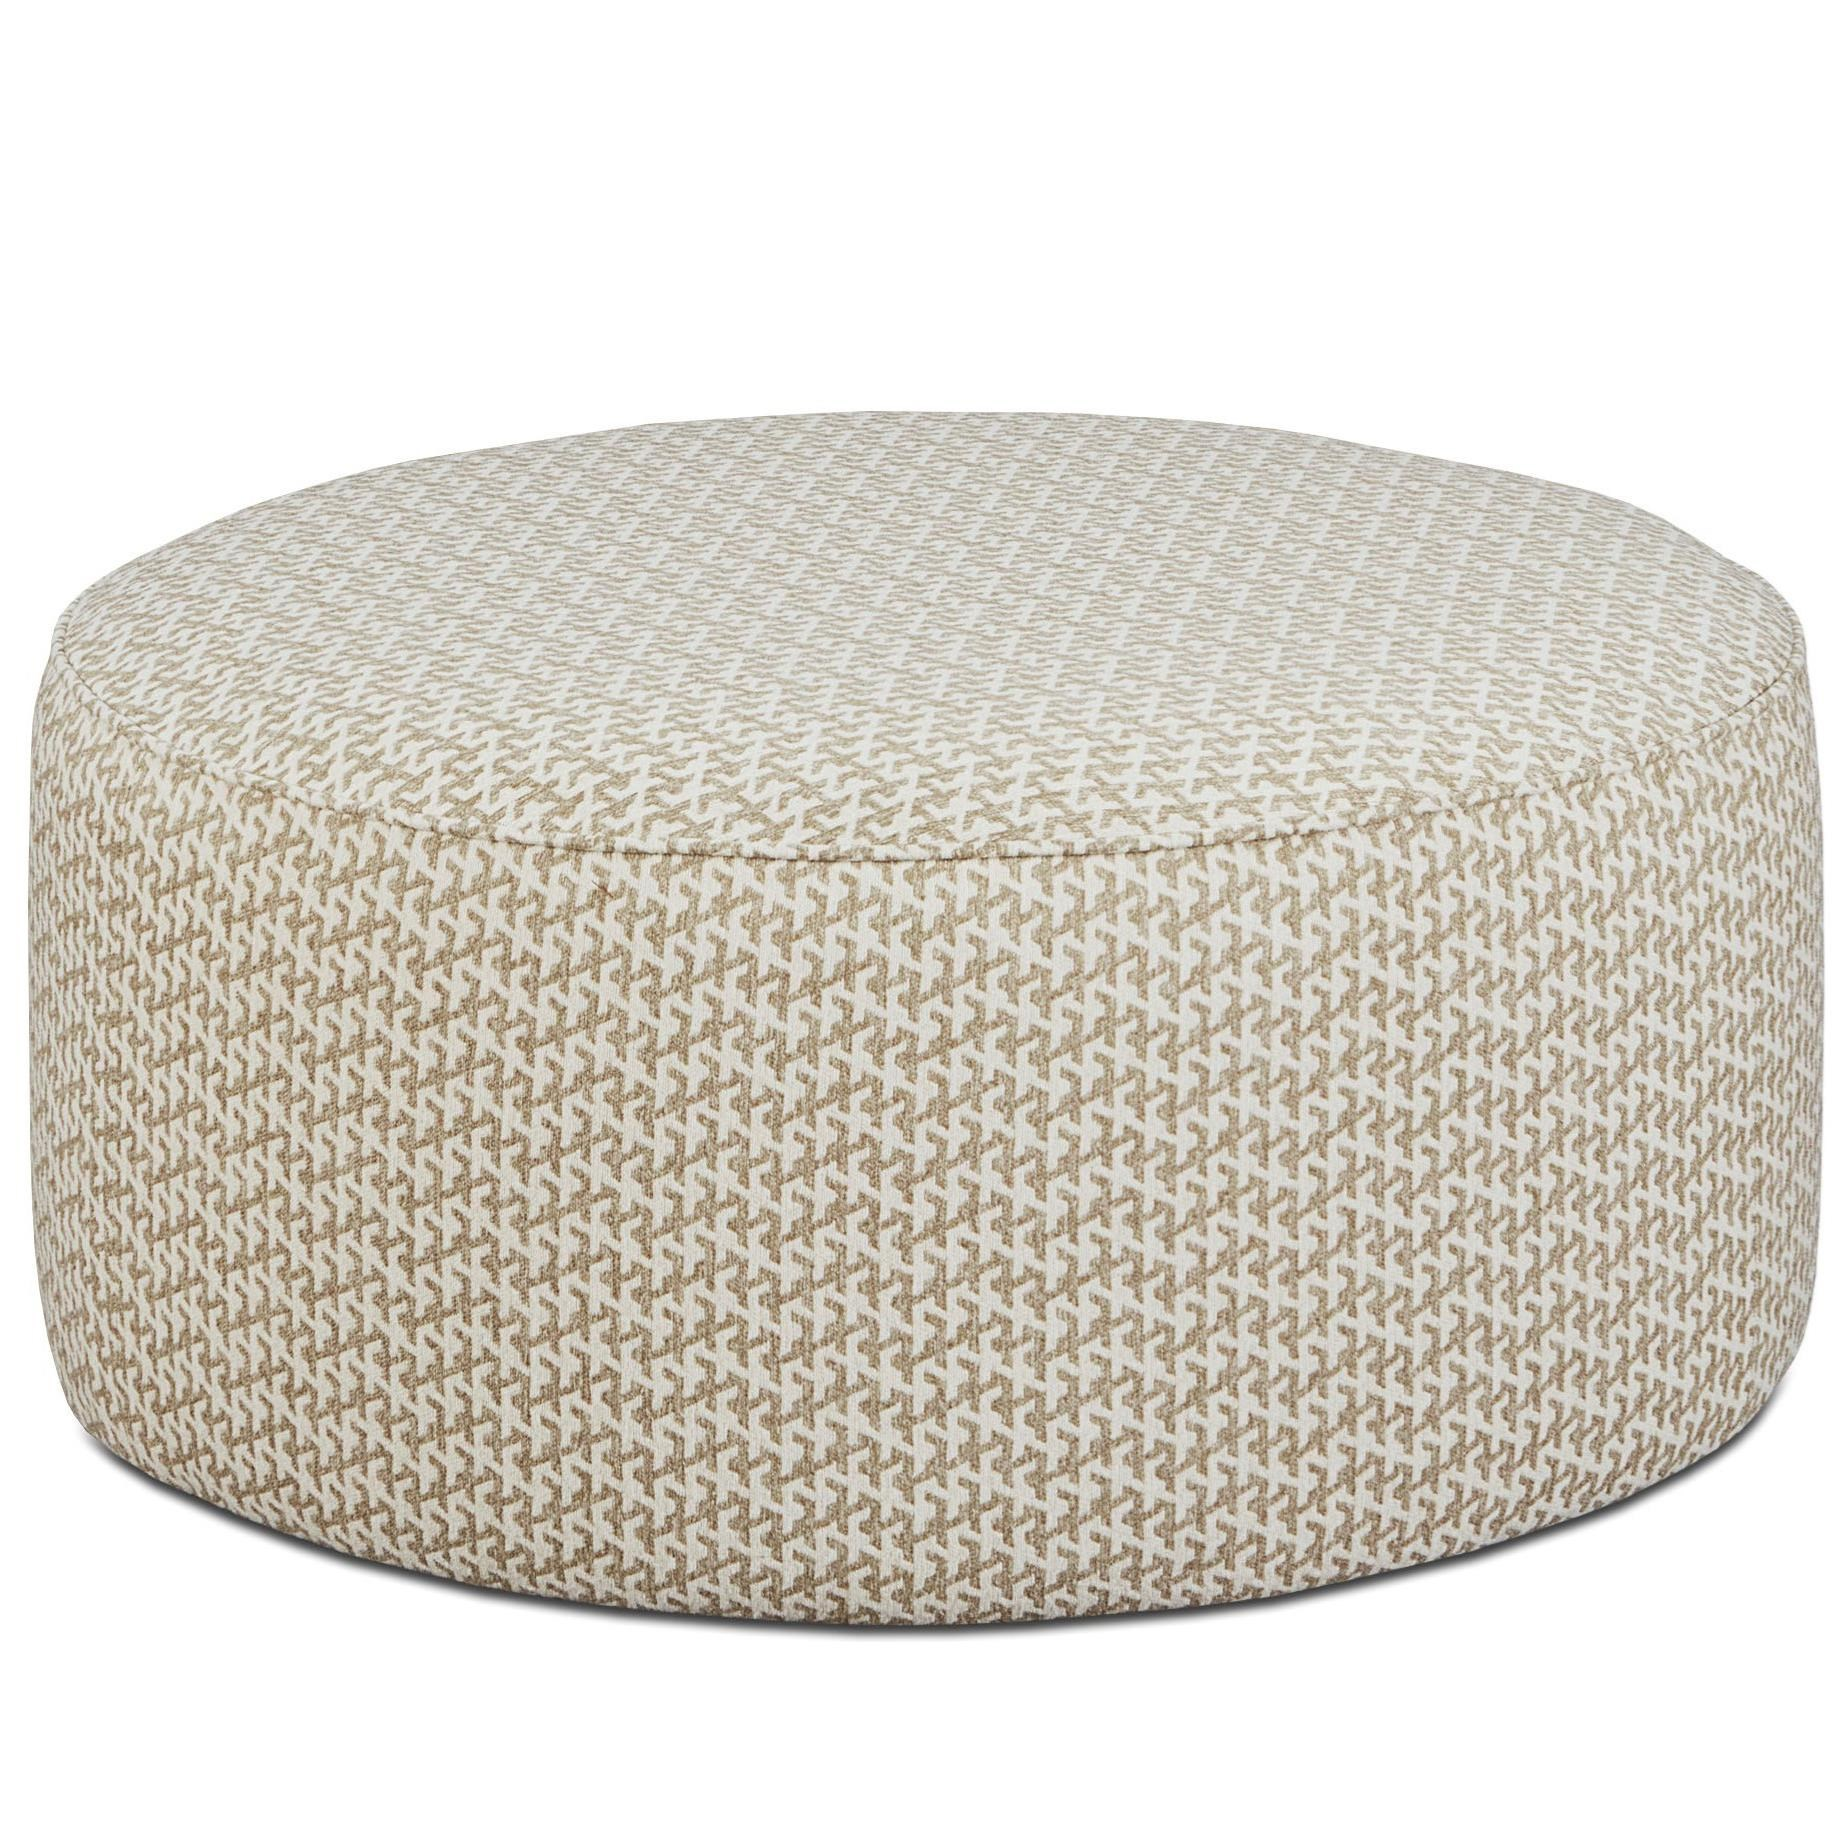 Fusion Furniture 140 Cocktail Ottoman - Item Number: 140Warble Twine